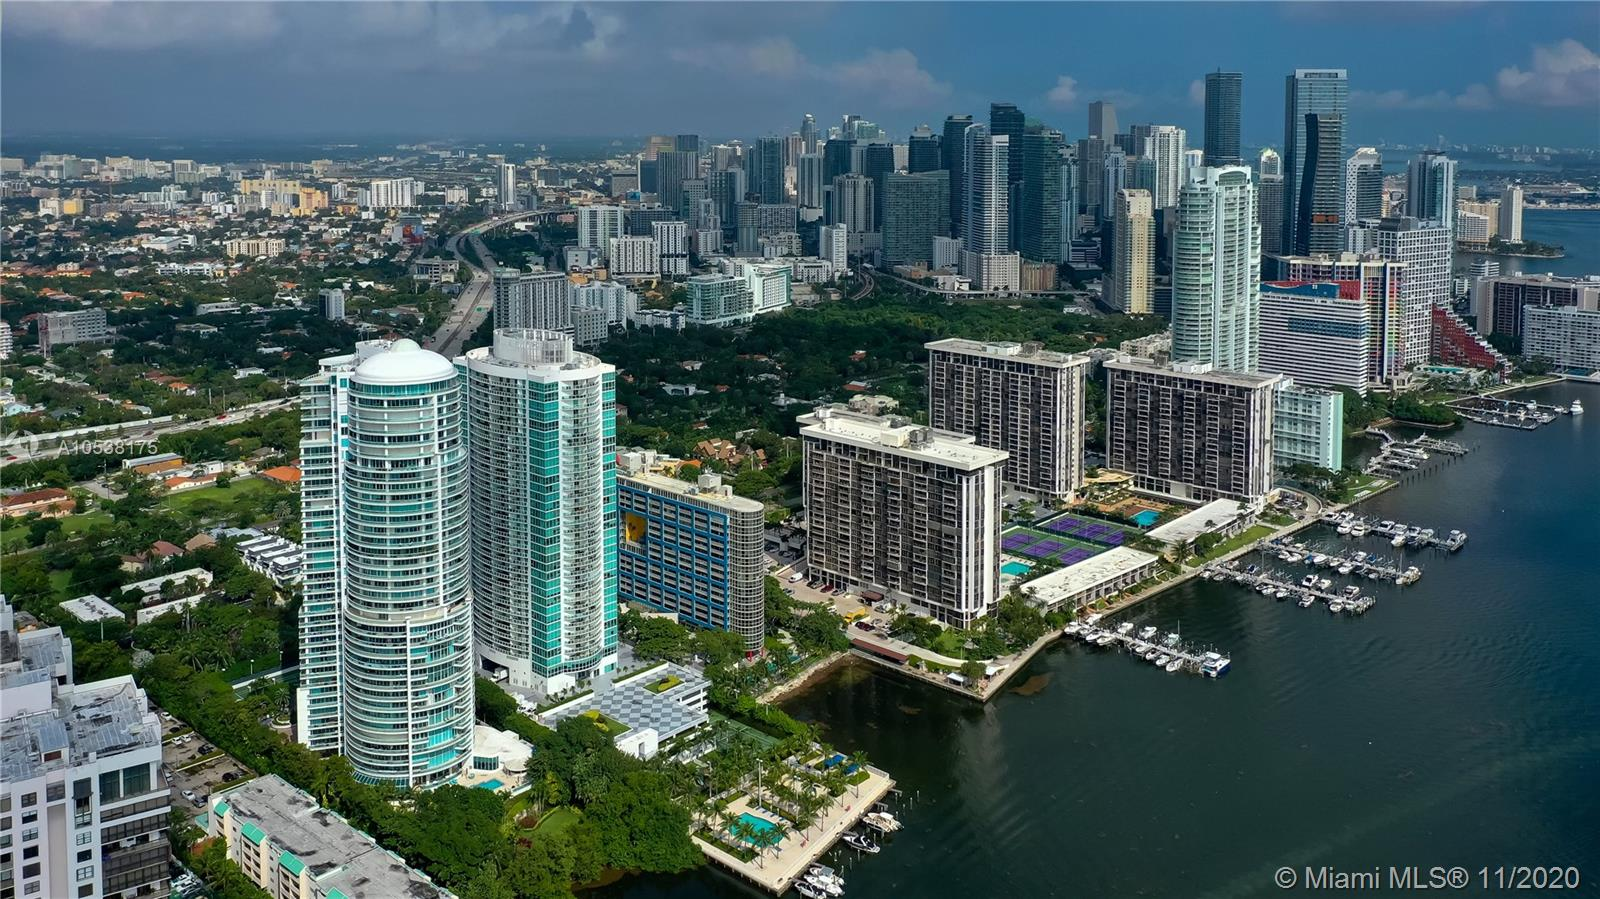 SPECTACULAR 3 BEDROOMS PLUS OFFICE PLUS DEN AND 3 FULL BATHROOMS. CONDO COMPLETLY REMODELED BY ARCHITECT FIRM BA DESIGN.  MARBLE FLOORS IN LIVING AREAS AND WOOD FLOORS IN BEDROOMS.  INCREDIBLE 180 DEGREES VIEW  TO BISCAYNE BAY AND CORAL GABLES.  WRAP AROUND BALCONY WITH MAGNIFICENT VIEWS FROM EVERY ROOM.  3 PARKING SPACES.